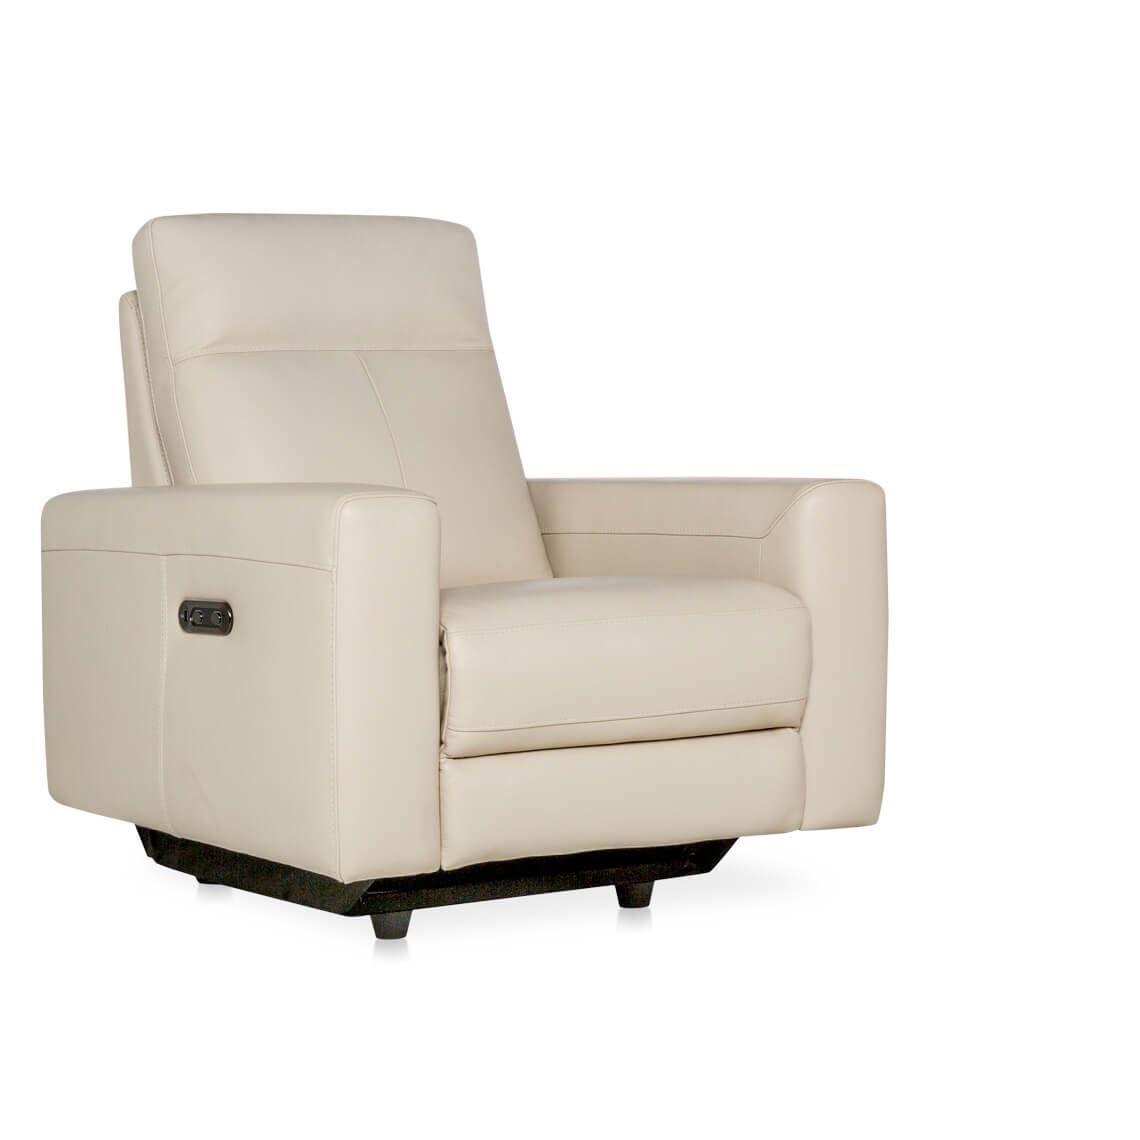 Xander Leather Electric Recliner Armchair Recliner Armchair